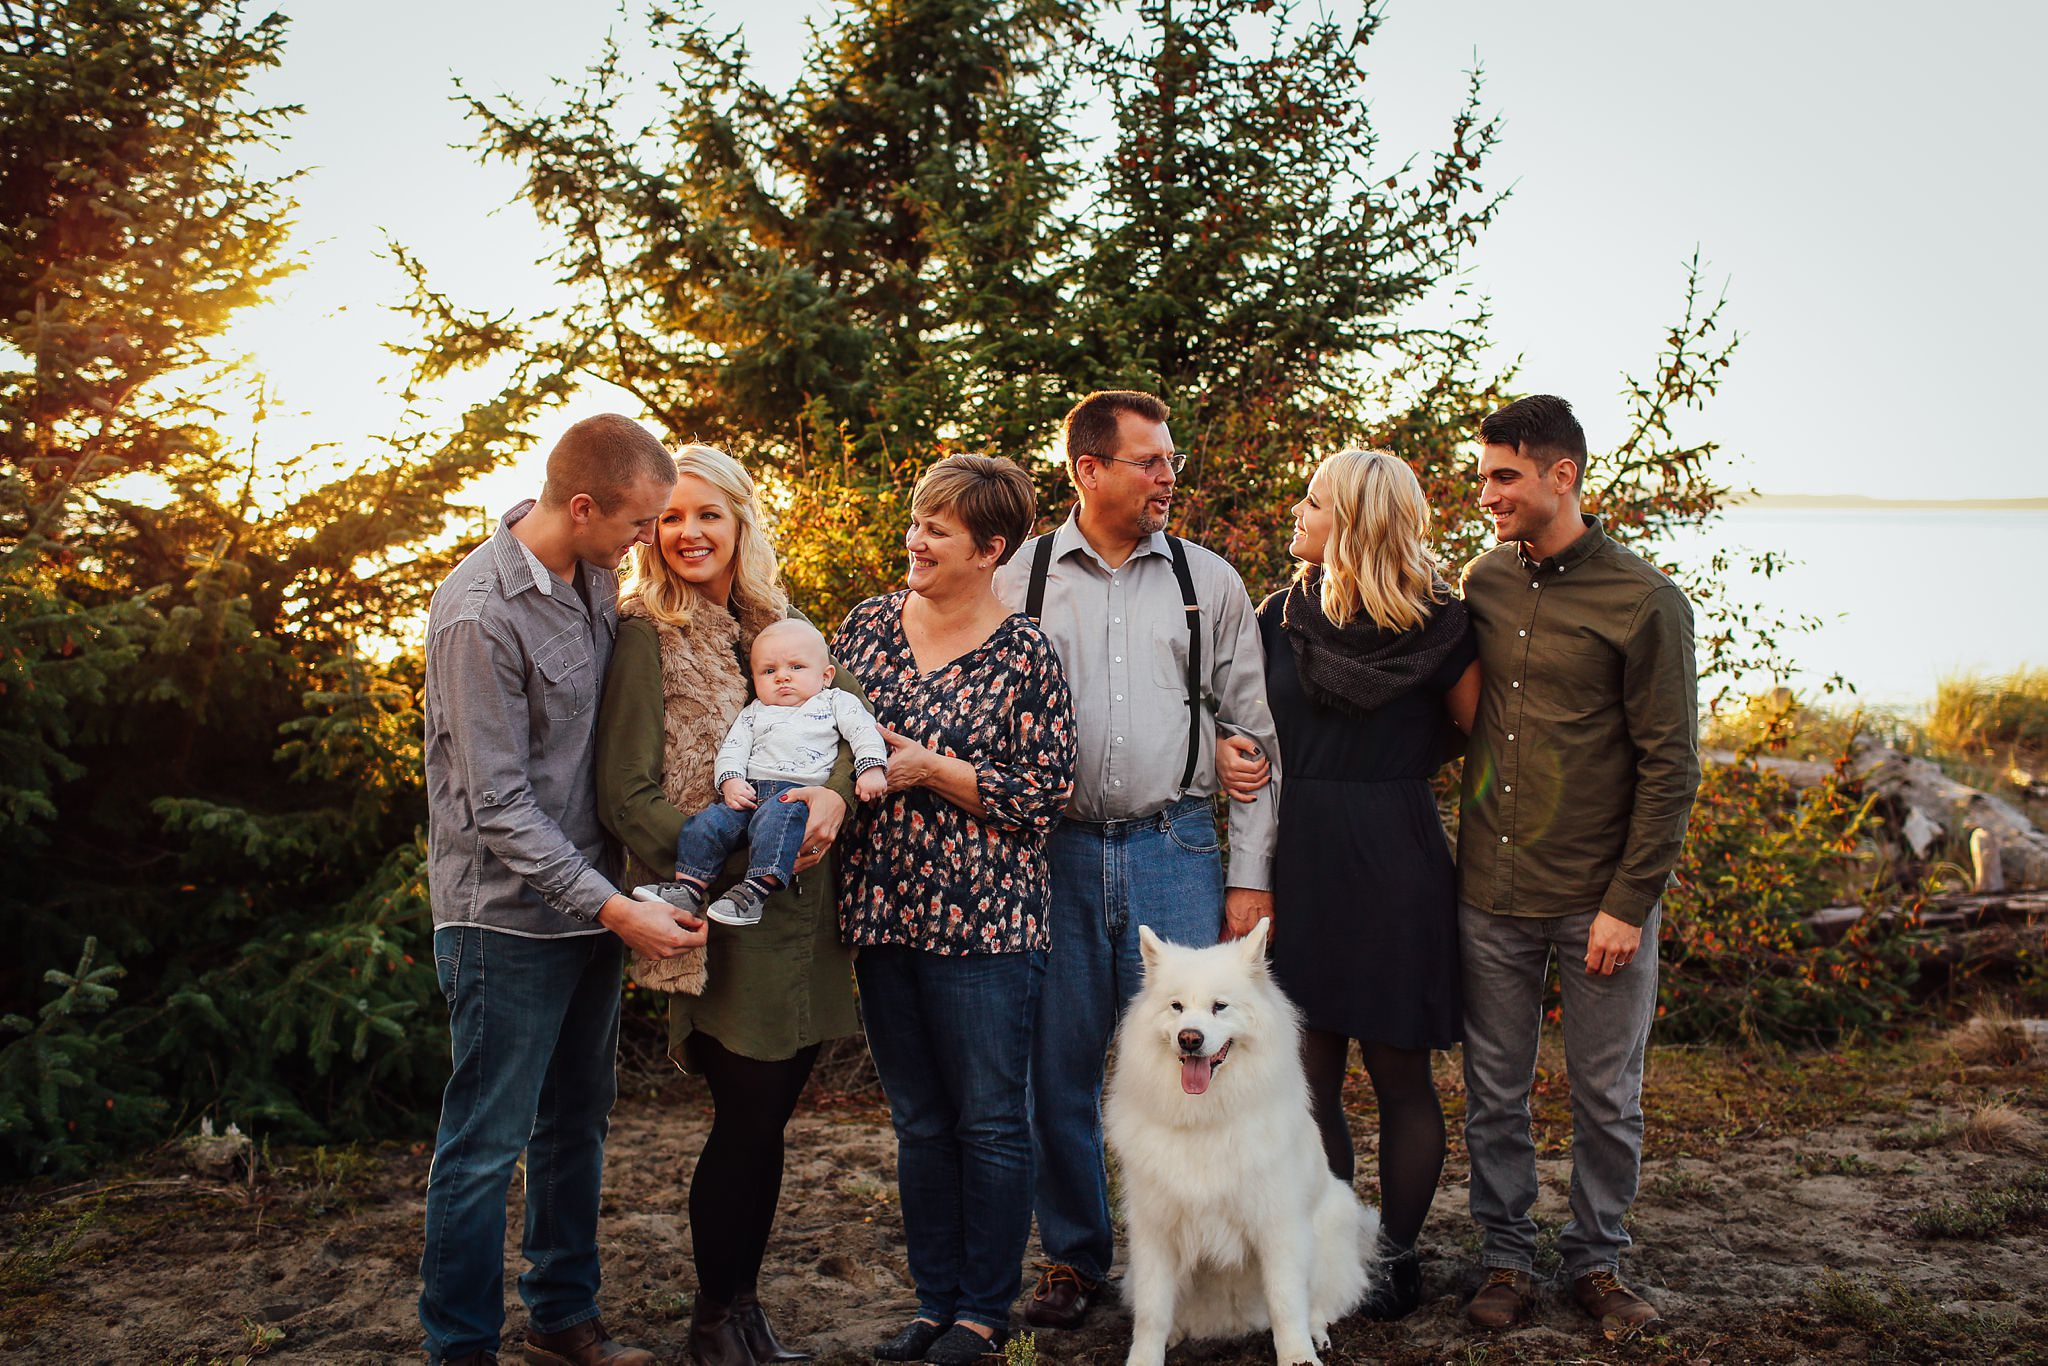 Whidbey-Island-Family-Photographer-Kara-Chappell-Photography_1377.jpg